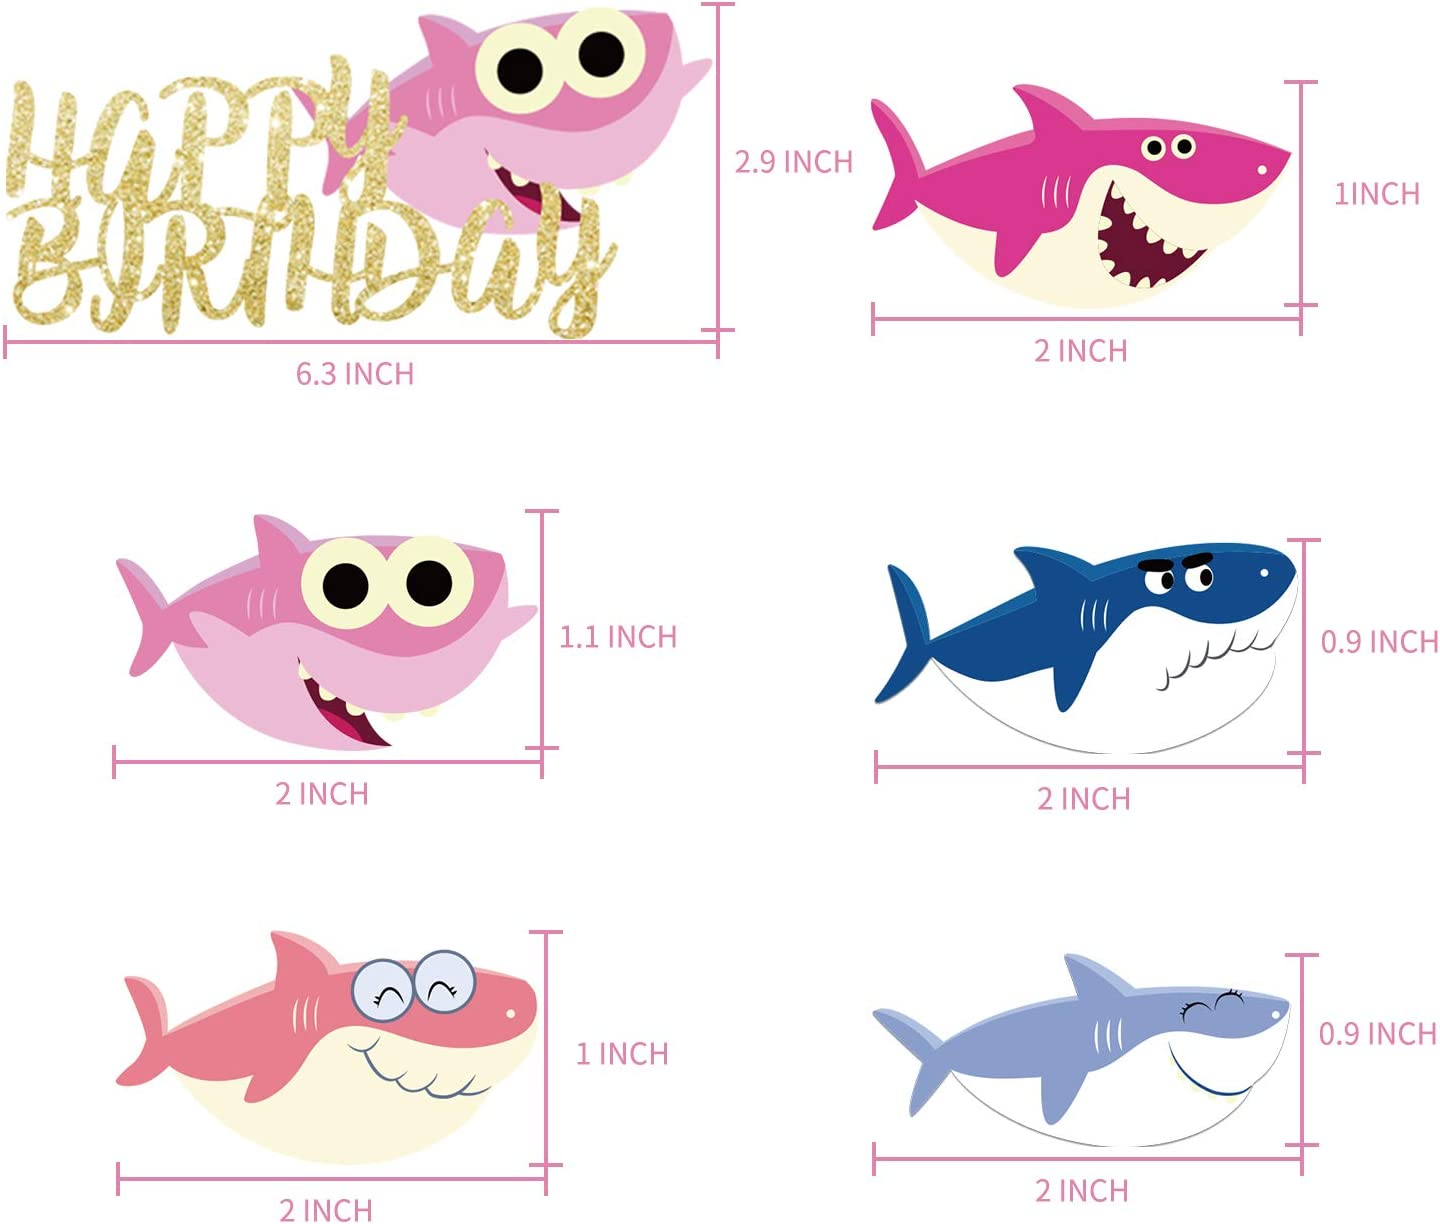 FunPartyDecorBaby Shark Cake Topper Birthday Party Decorations Shark Cupcake Toppers For Children/'s Party Shark Theme Party Supplies